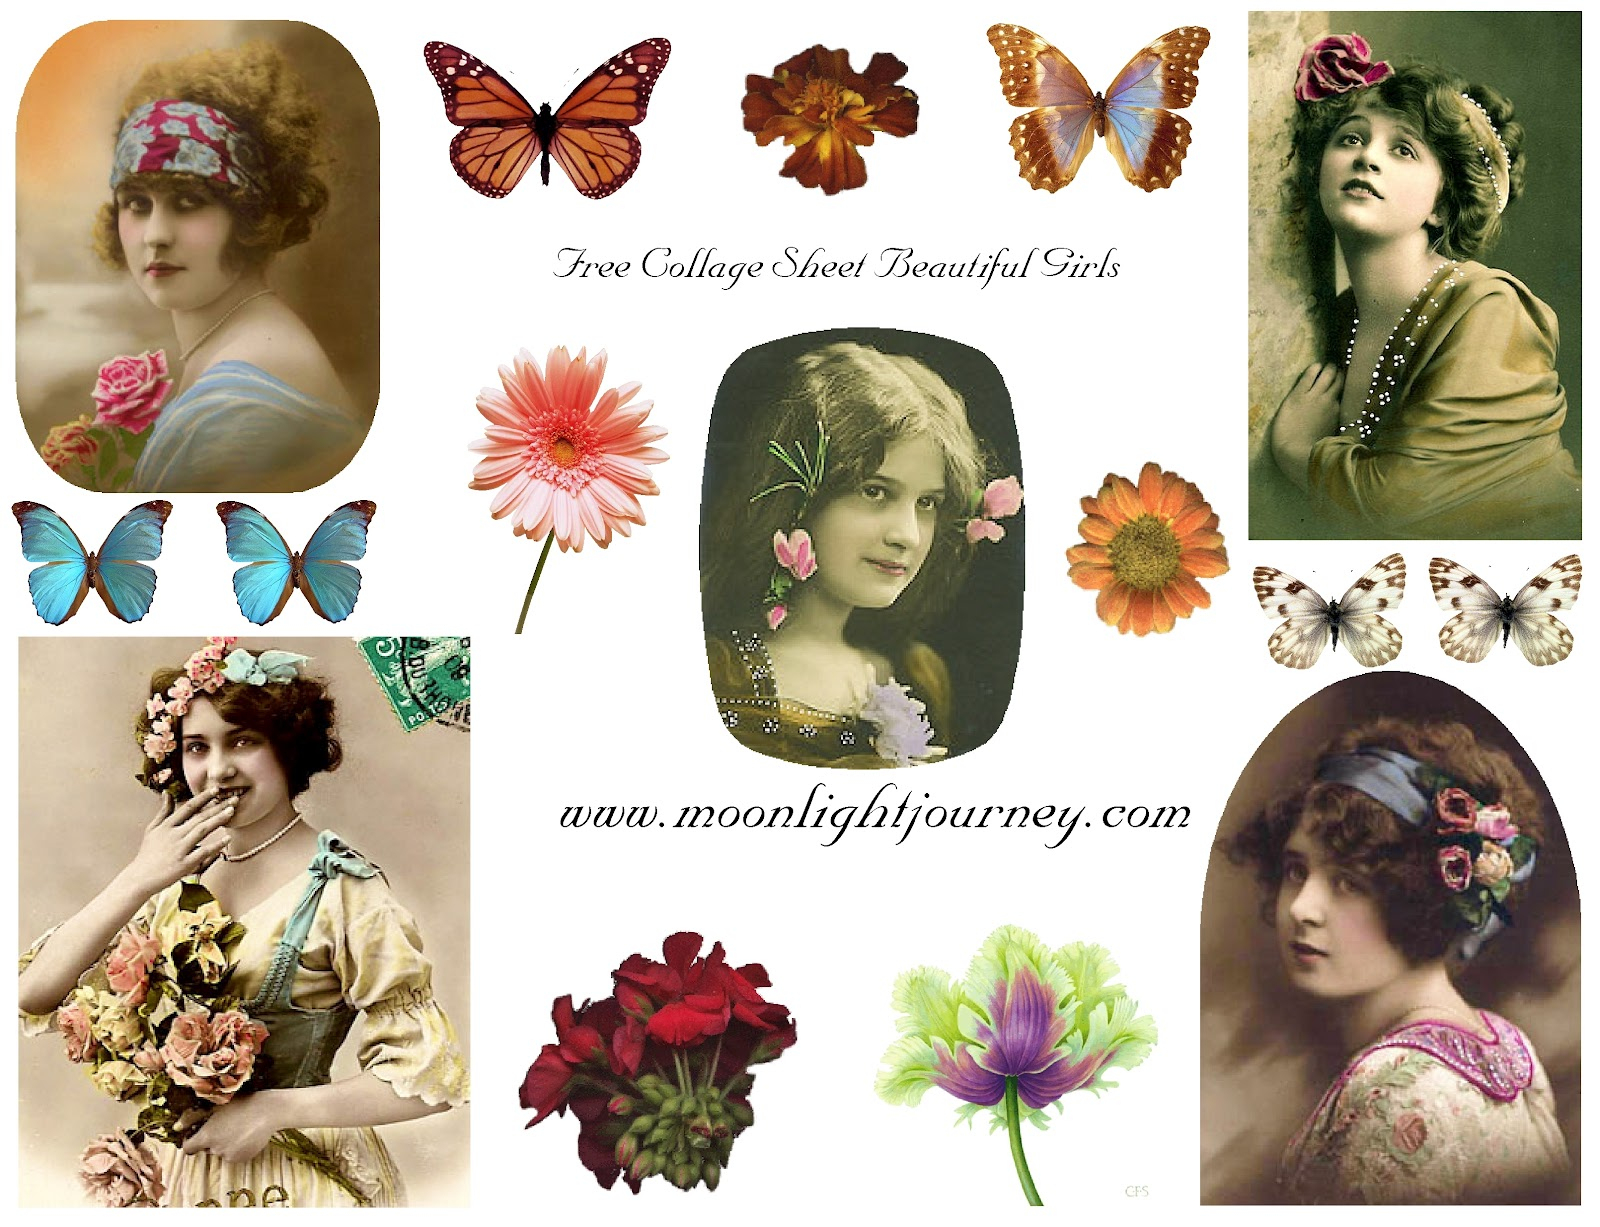 Moonlightjourney: Free Collage Sheets - Free Printable Picture Collage